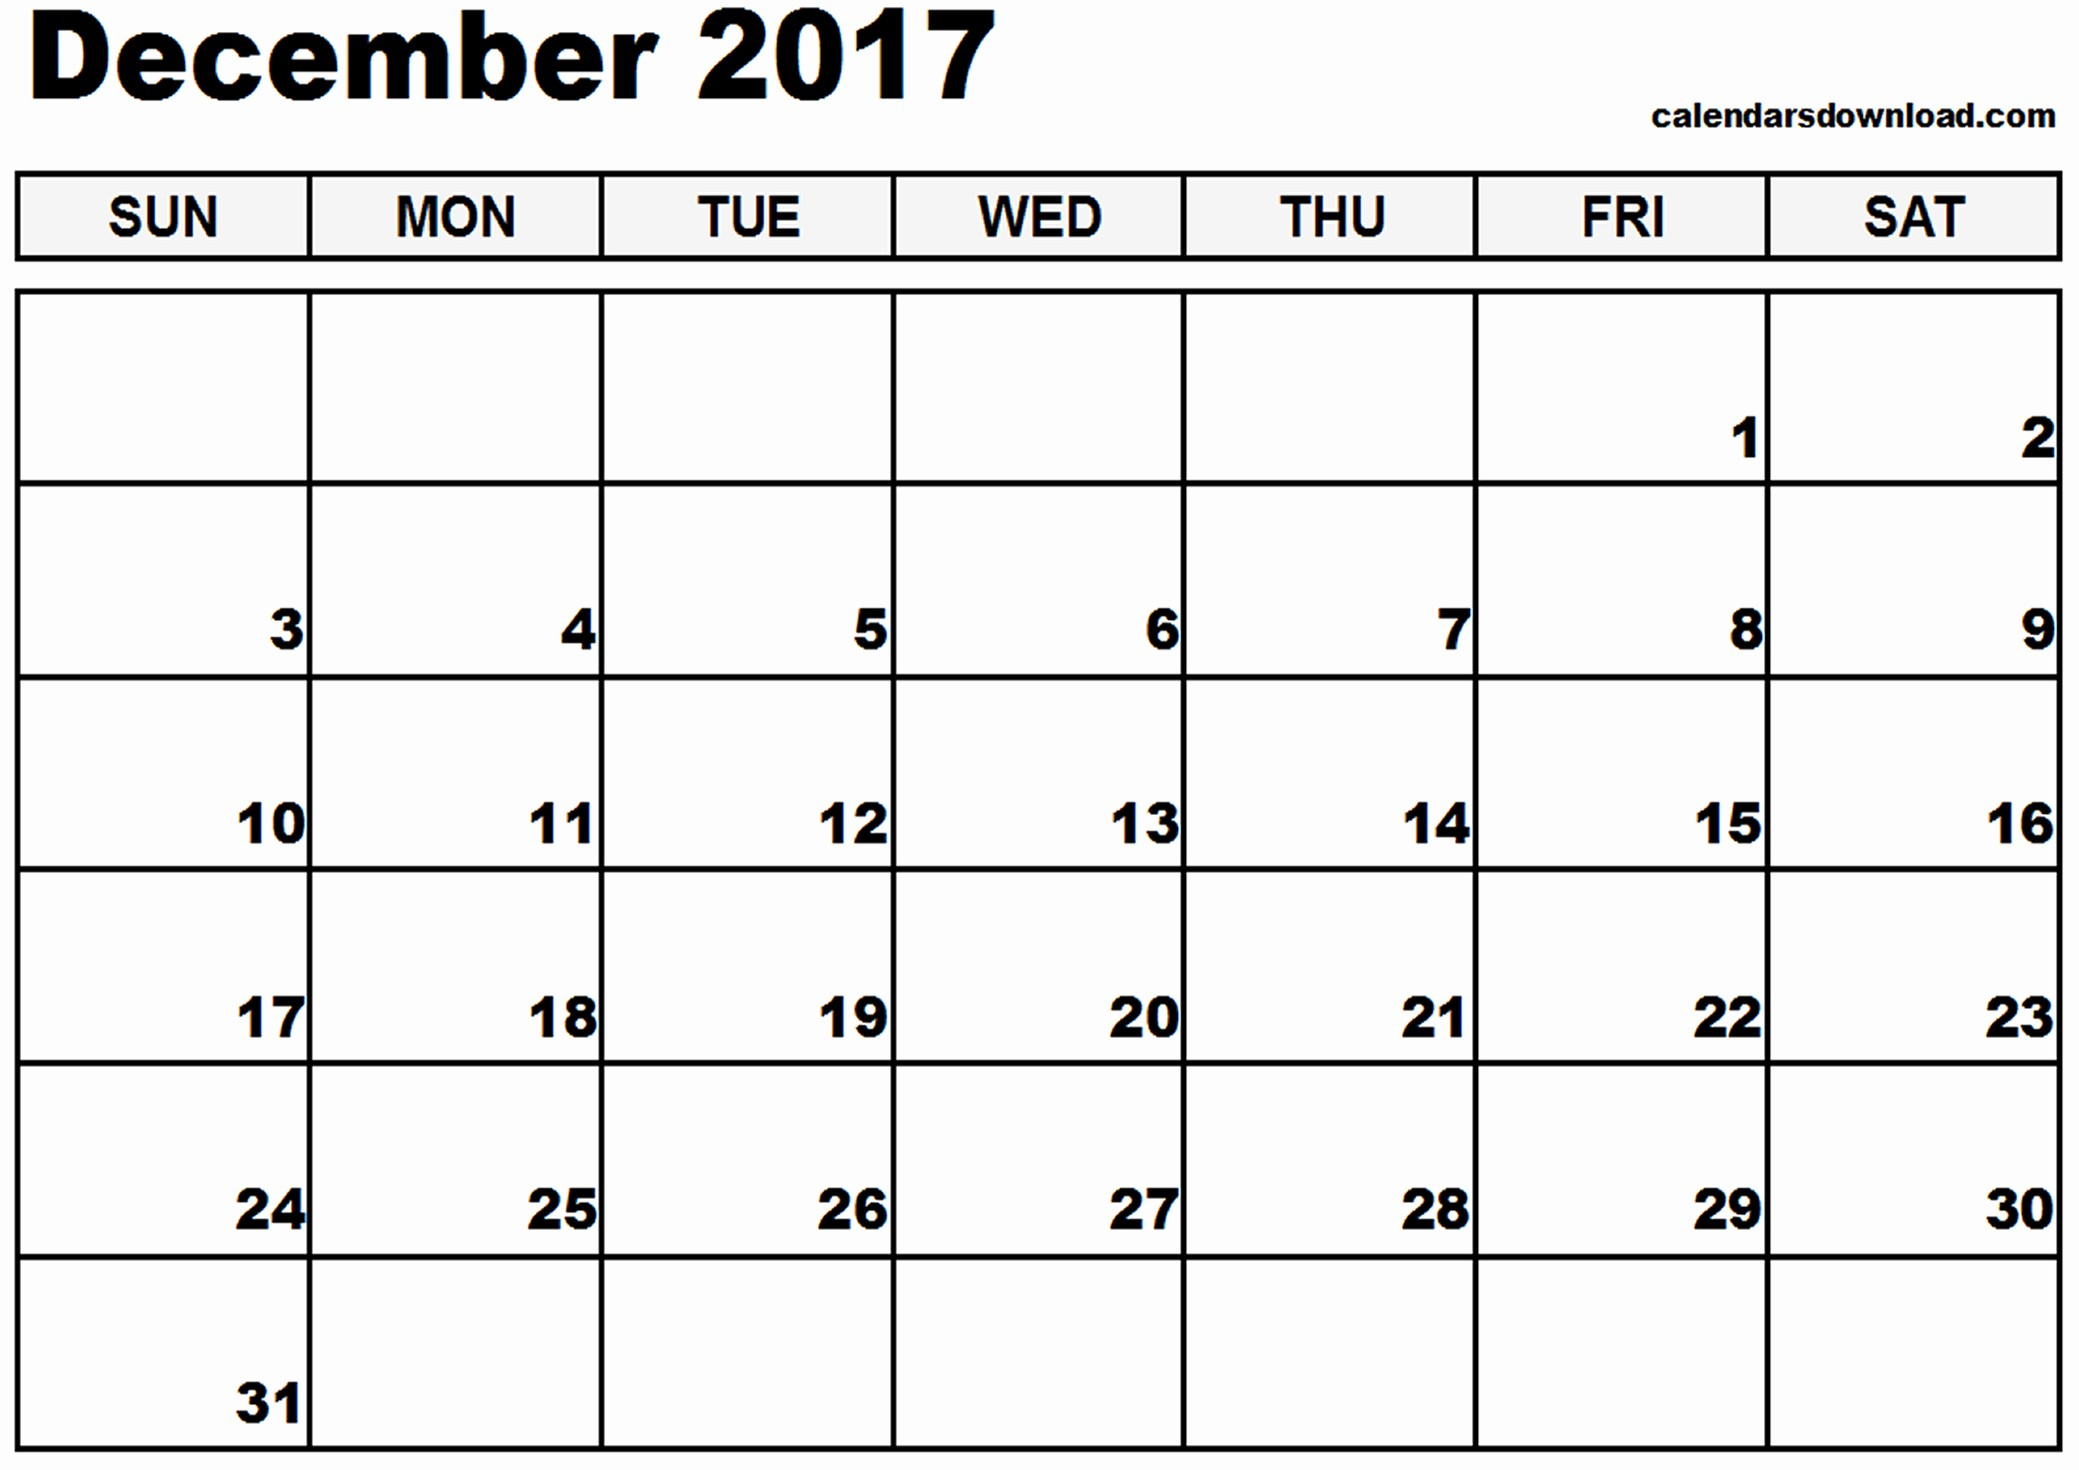 December 2017 Calendar Template Word Best Of December 2017 Calendar Template